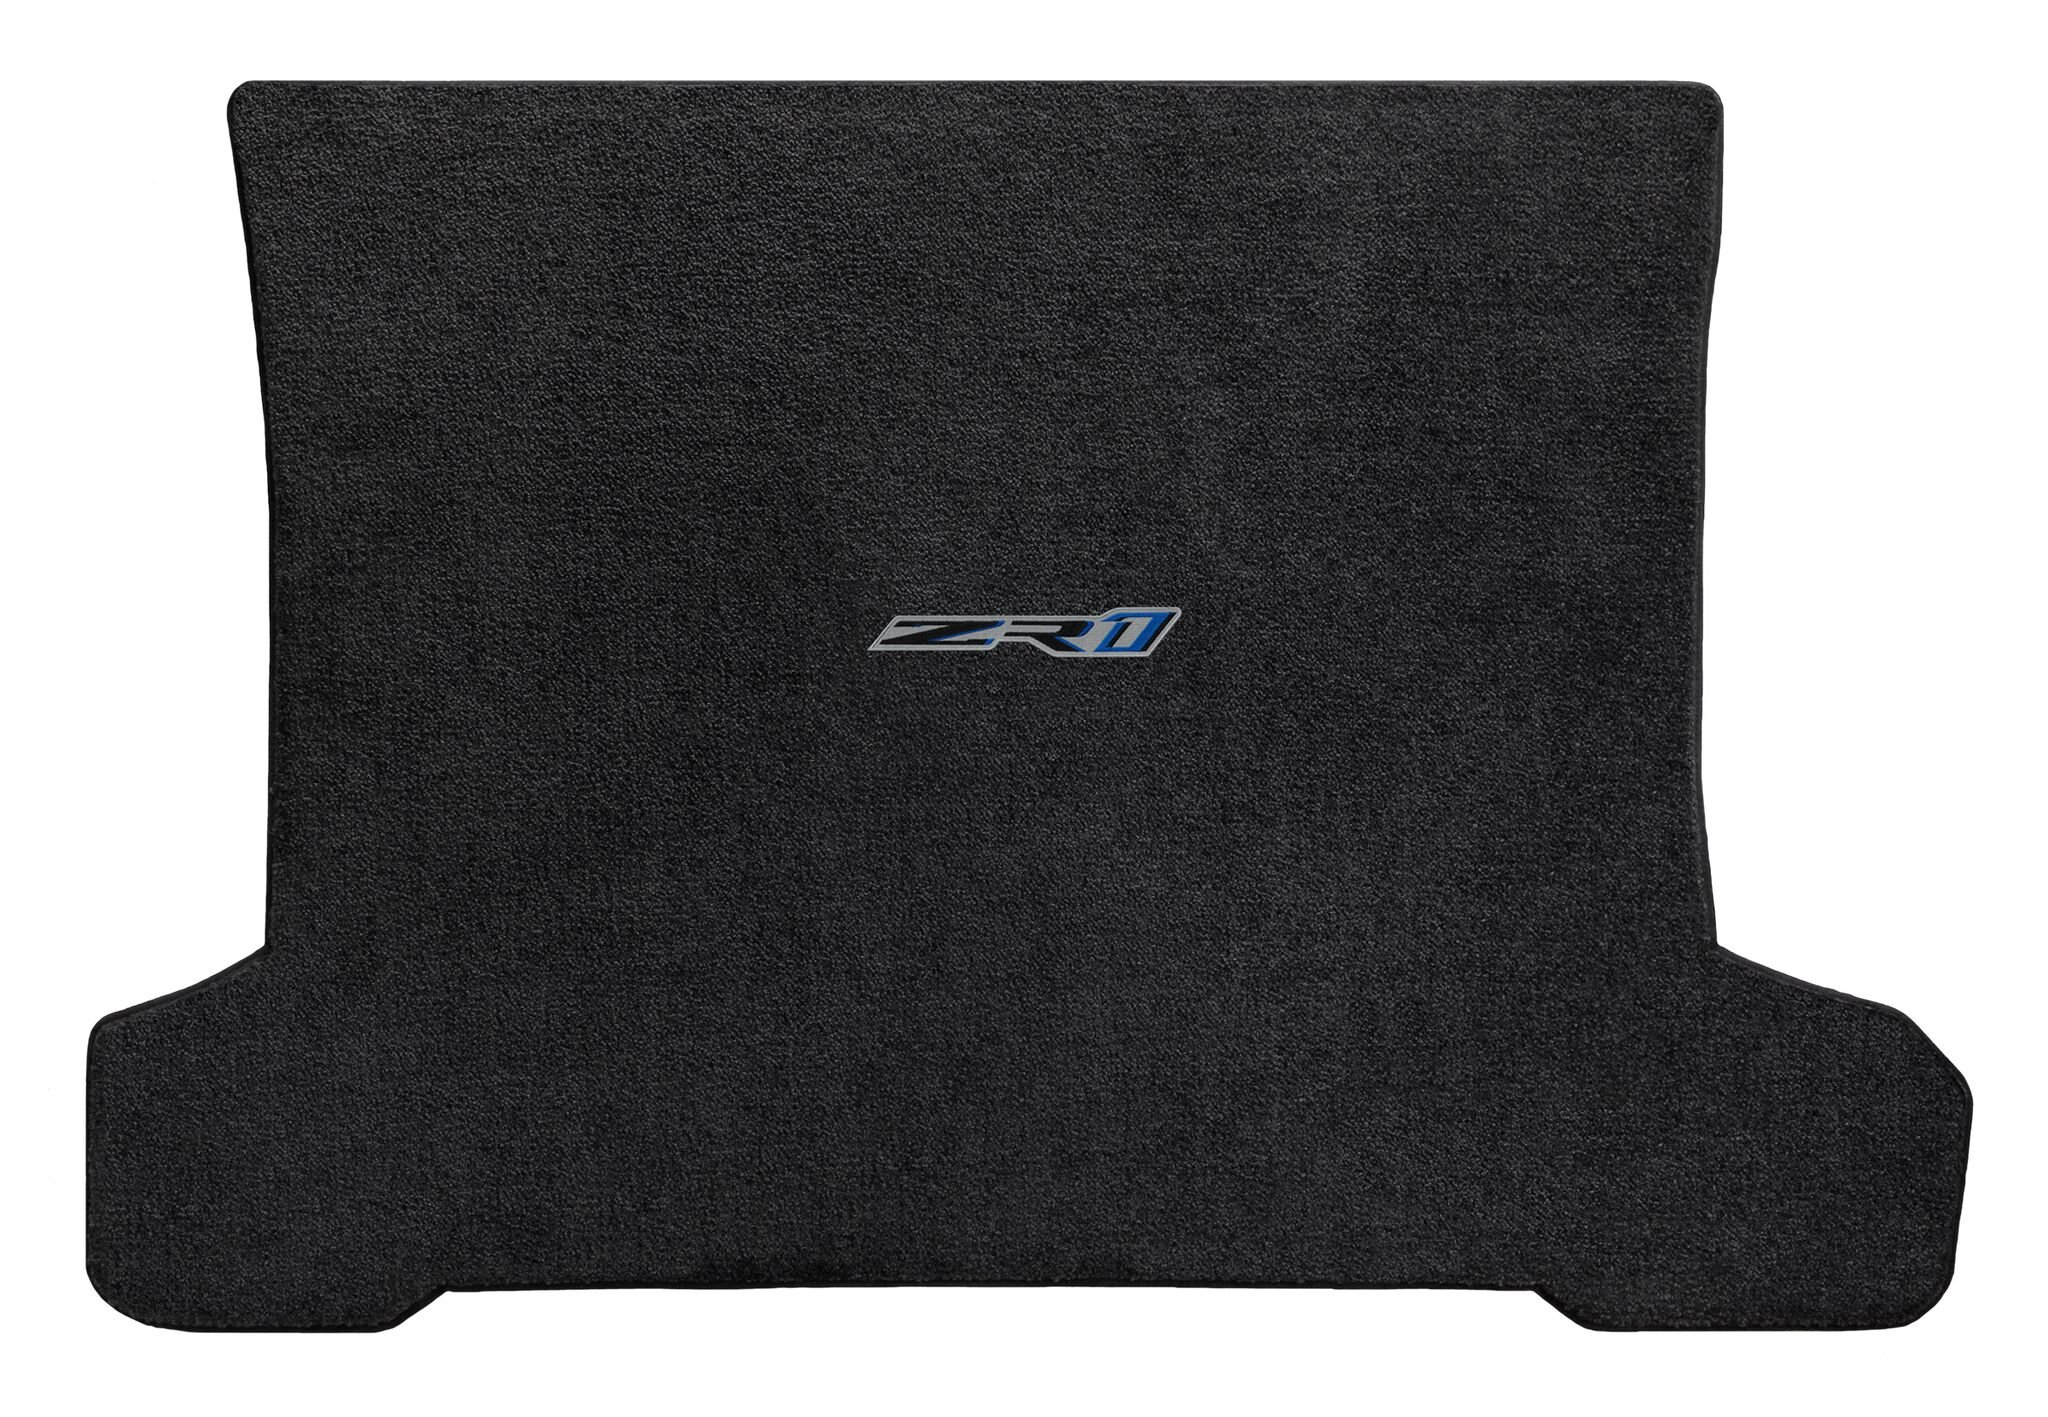 2019 C7 Corvette Lloyd Ultimats Cargo Mat With Embroidered ZR1 Logo